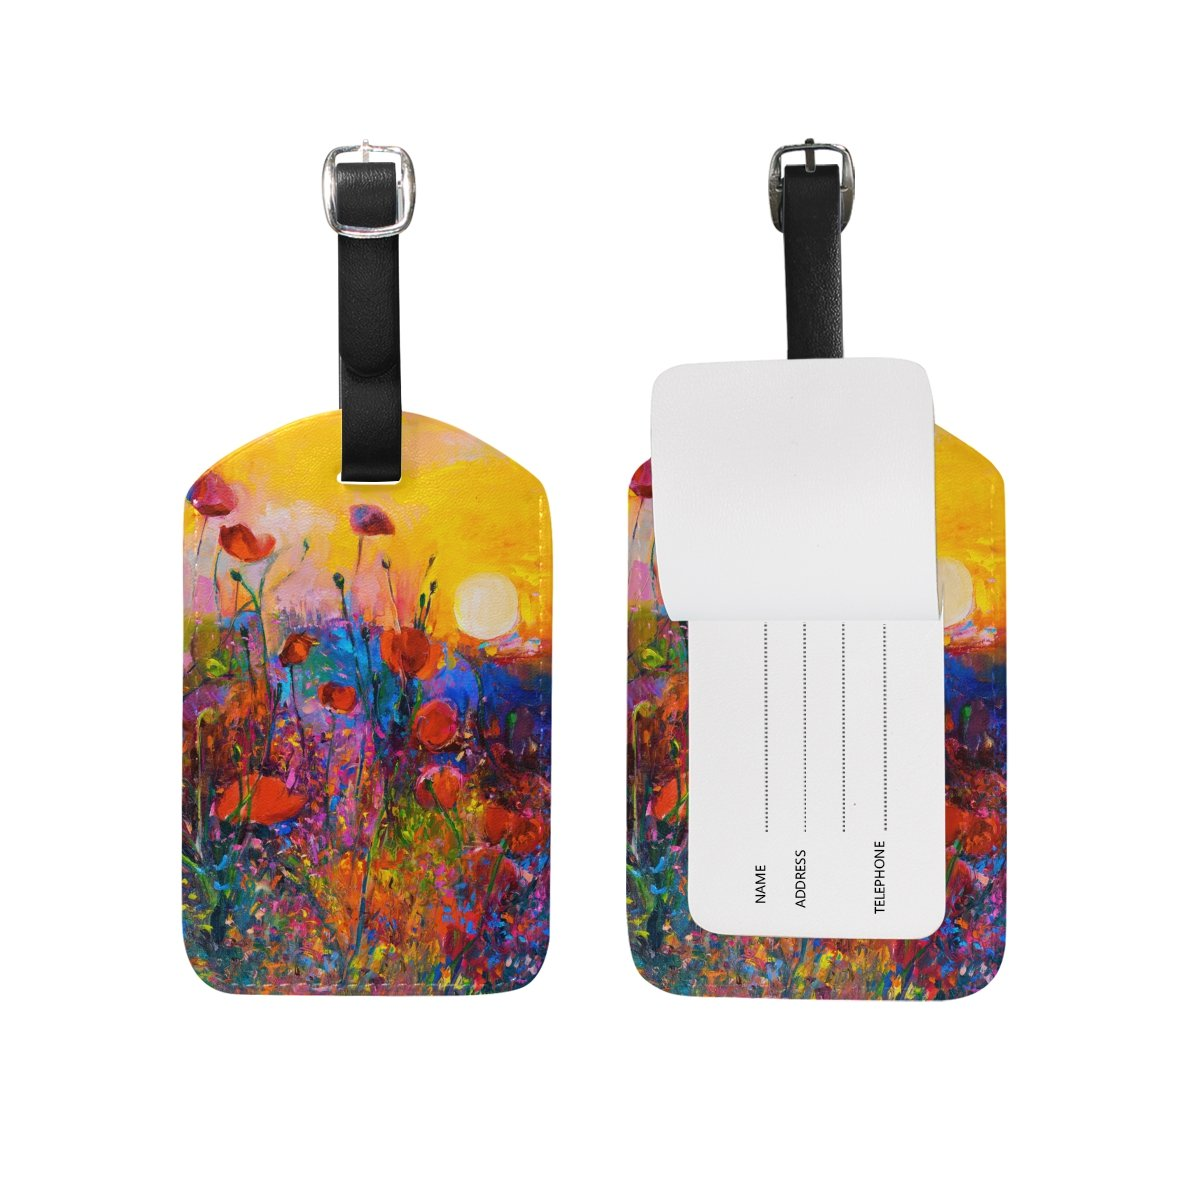 Chen Miranda Poppies Painting Travel Luggage Suitcase Label ID Tag PU for Baggage Bag 1 Piece